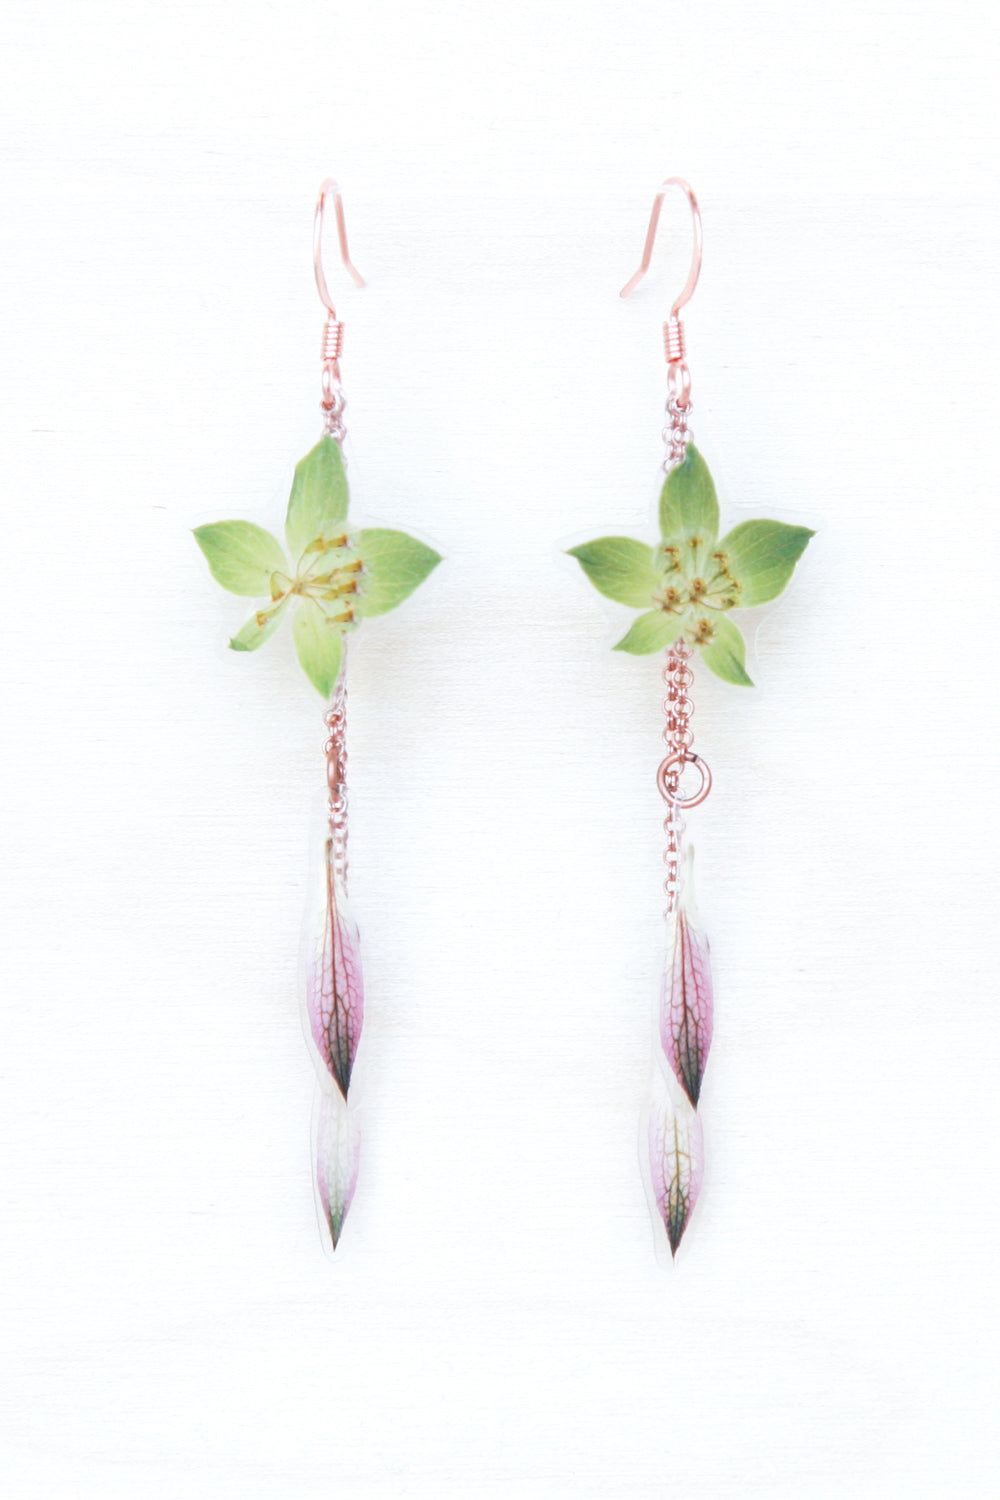 Purple Astrantia & Green Bupleurum Layered Earrings